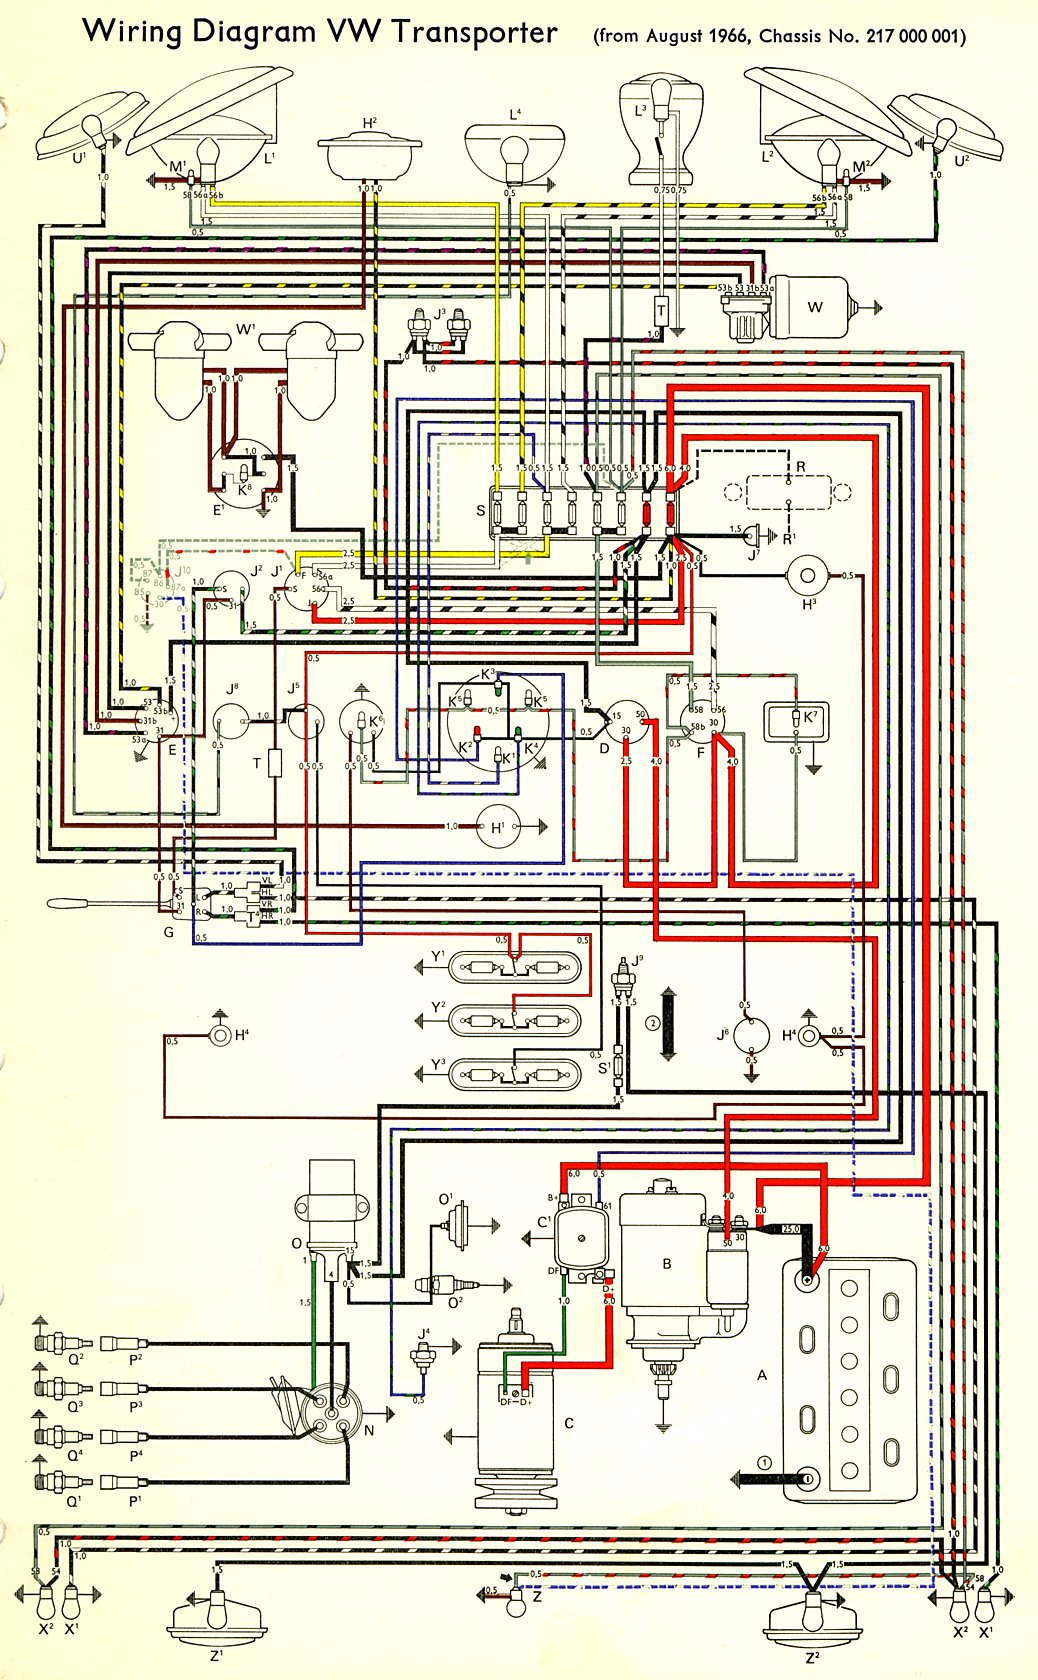 hight resolution of 1967 vw bus wiring diagram wiring diagram third level vw distributor diagram 1967 vw bus wiring